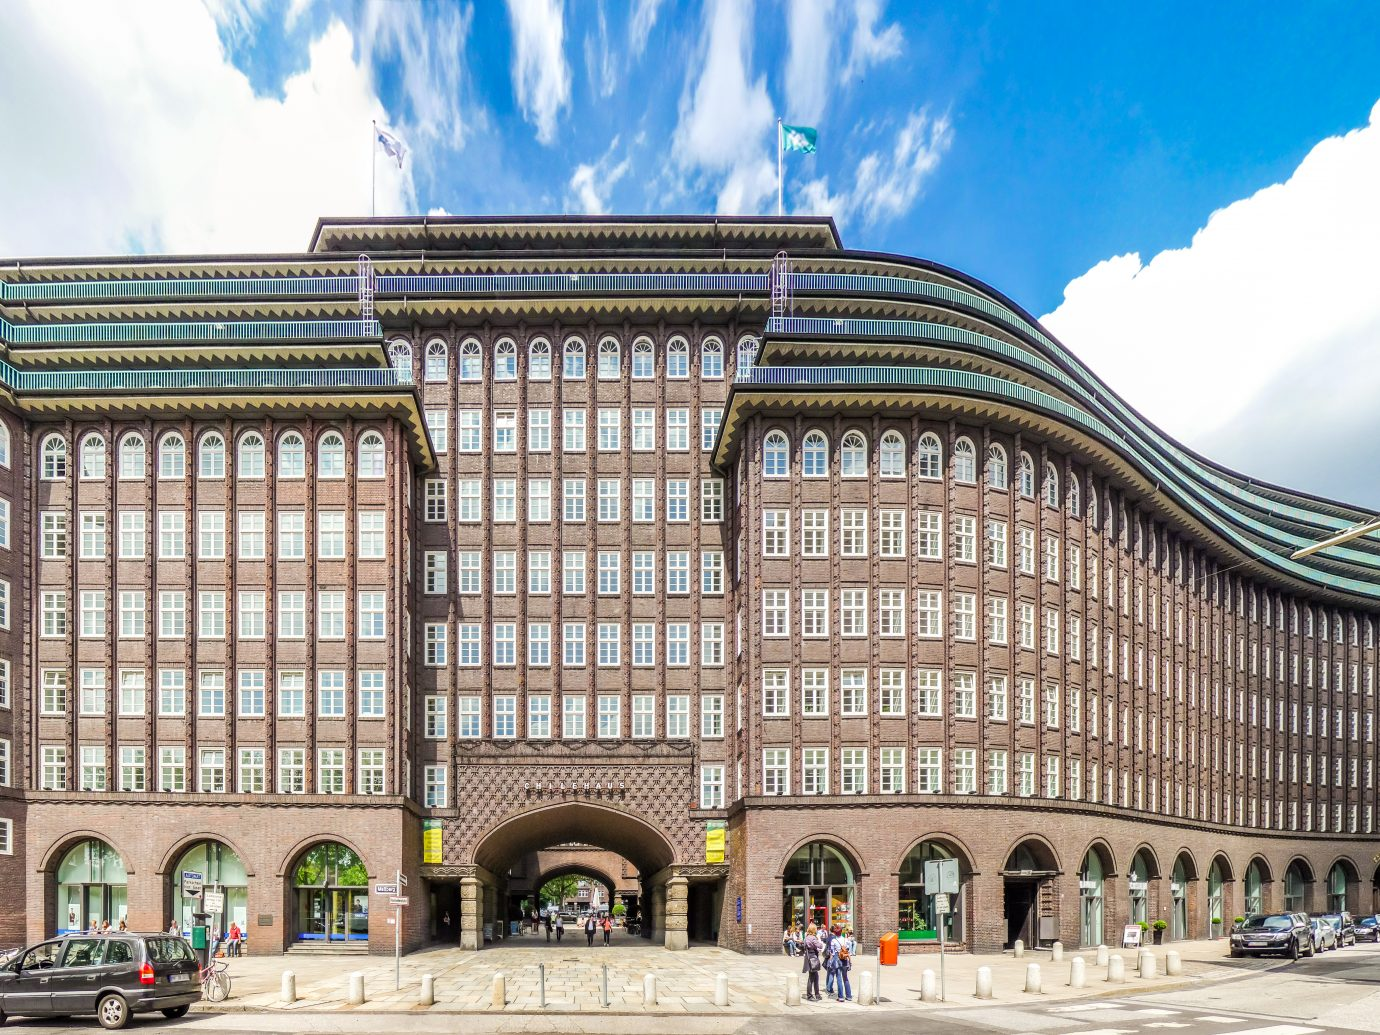 Wide angle view of famous Chilehaus